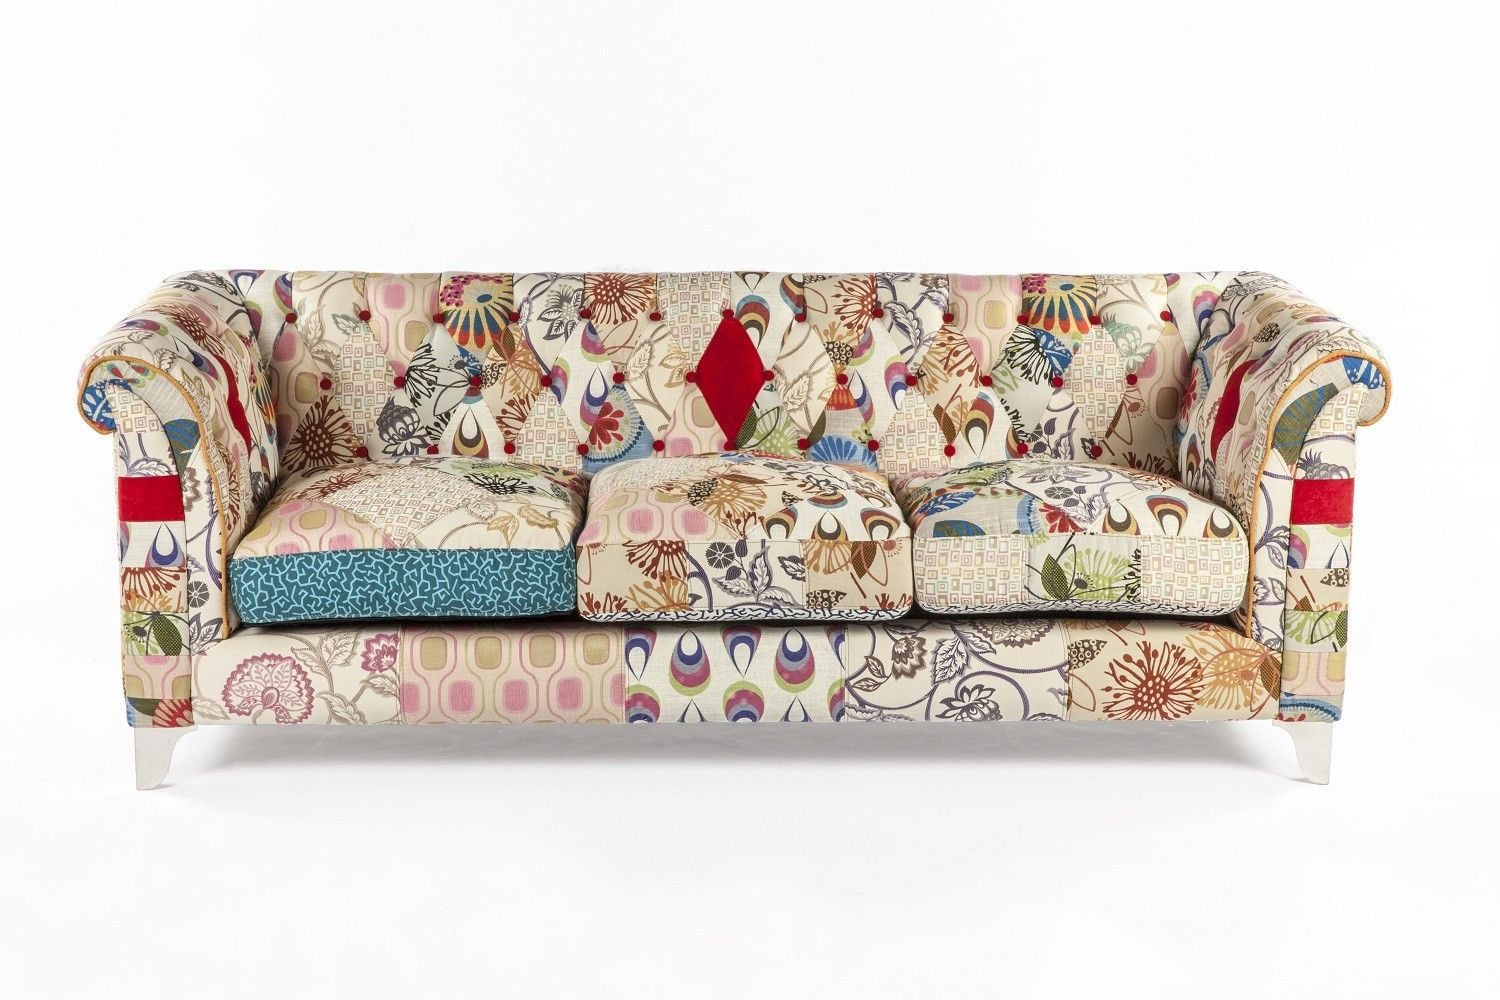 Lucas Bohemian Patchwork Sofa Ideas For The House In